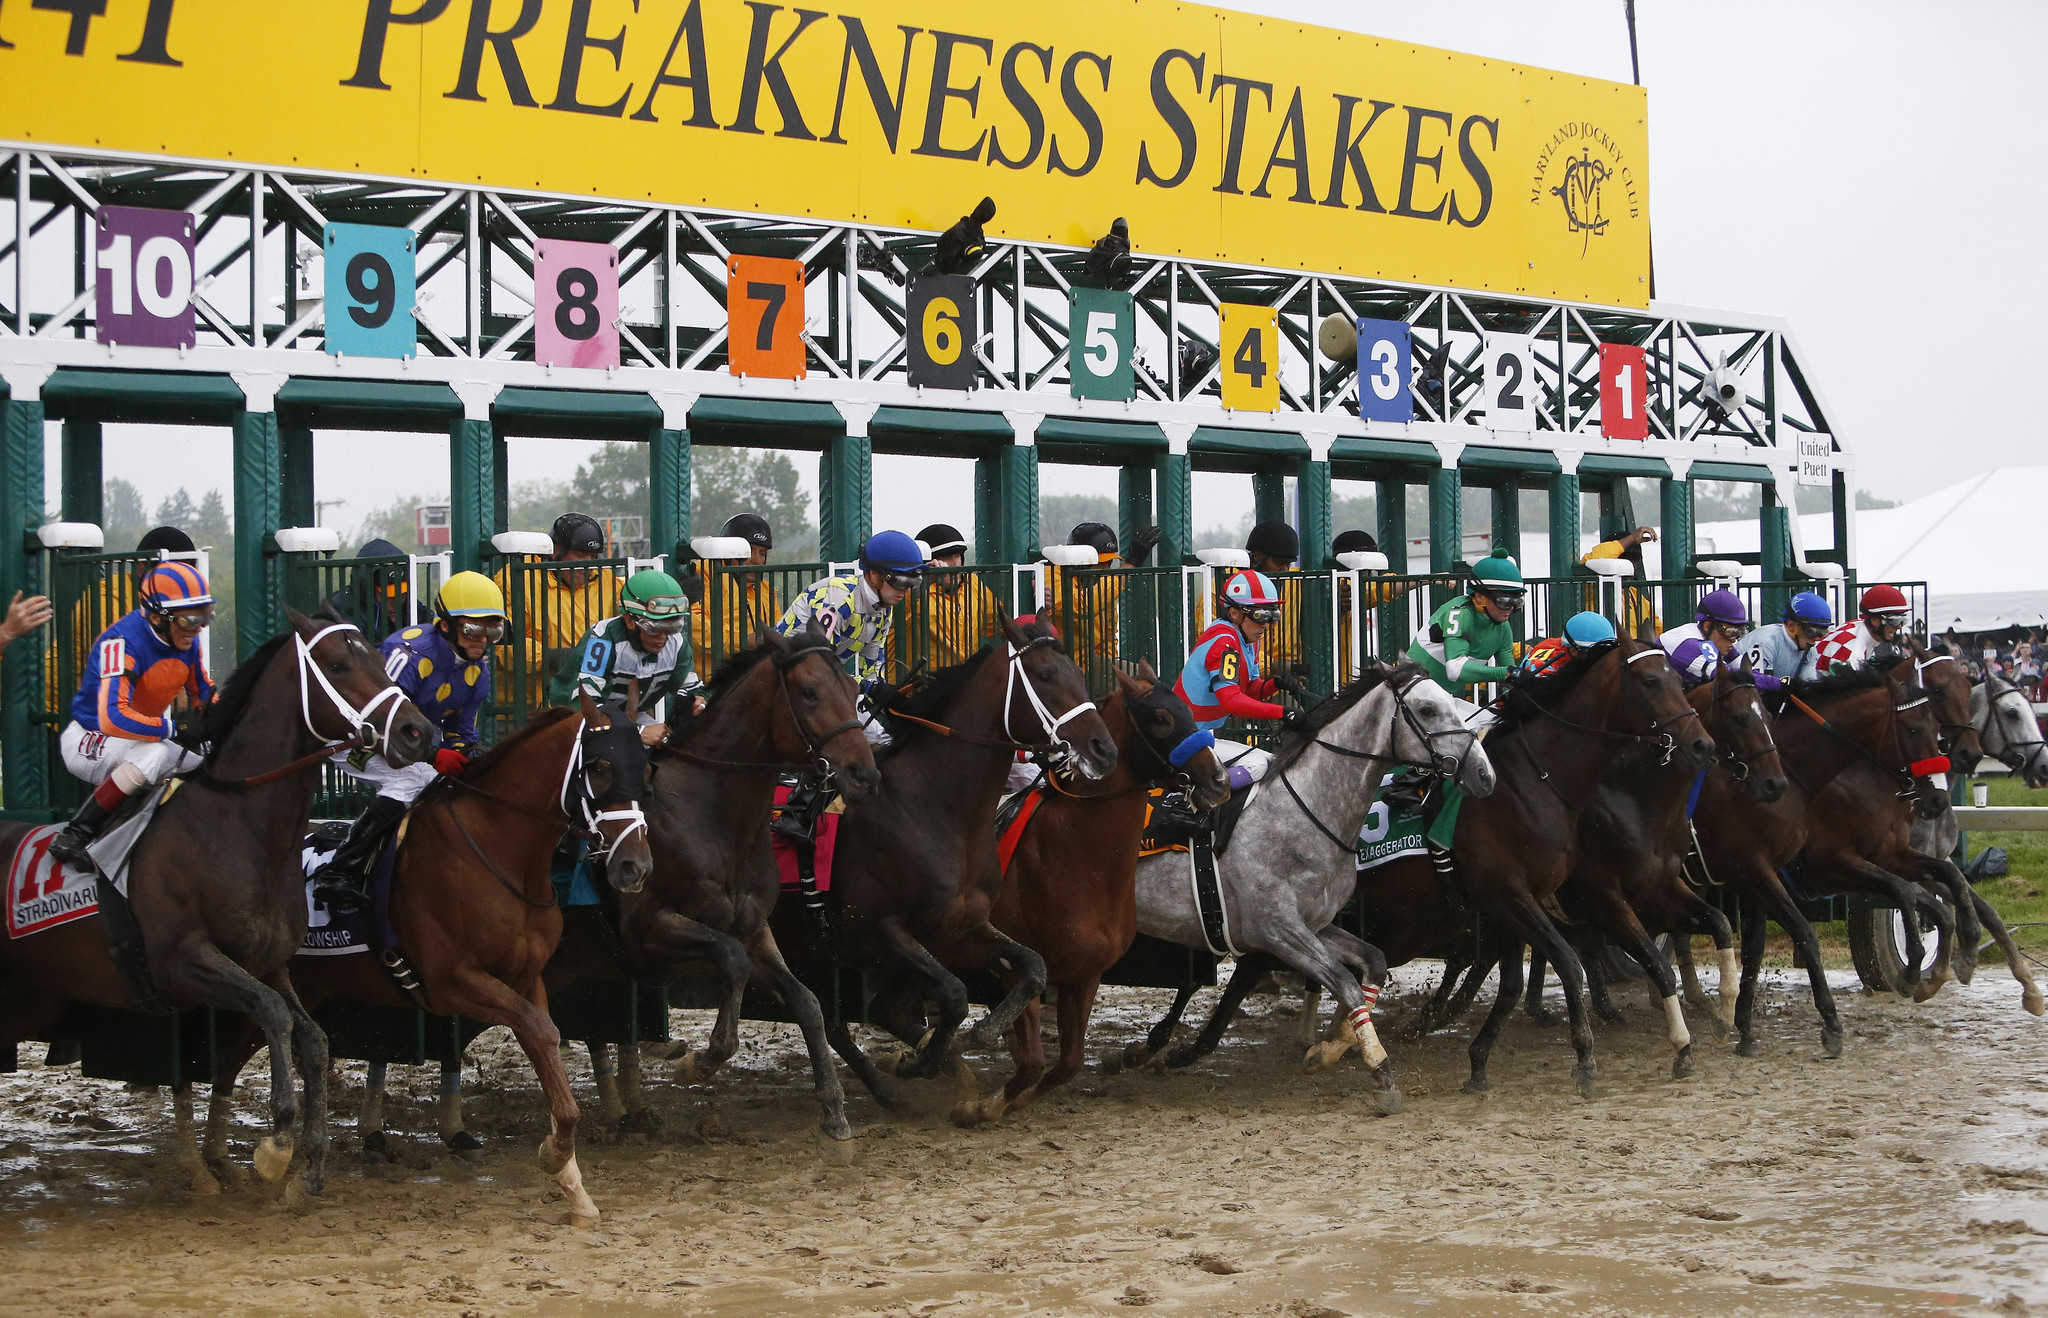 2021 preakness stakes betting 3betting donks on 26s